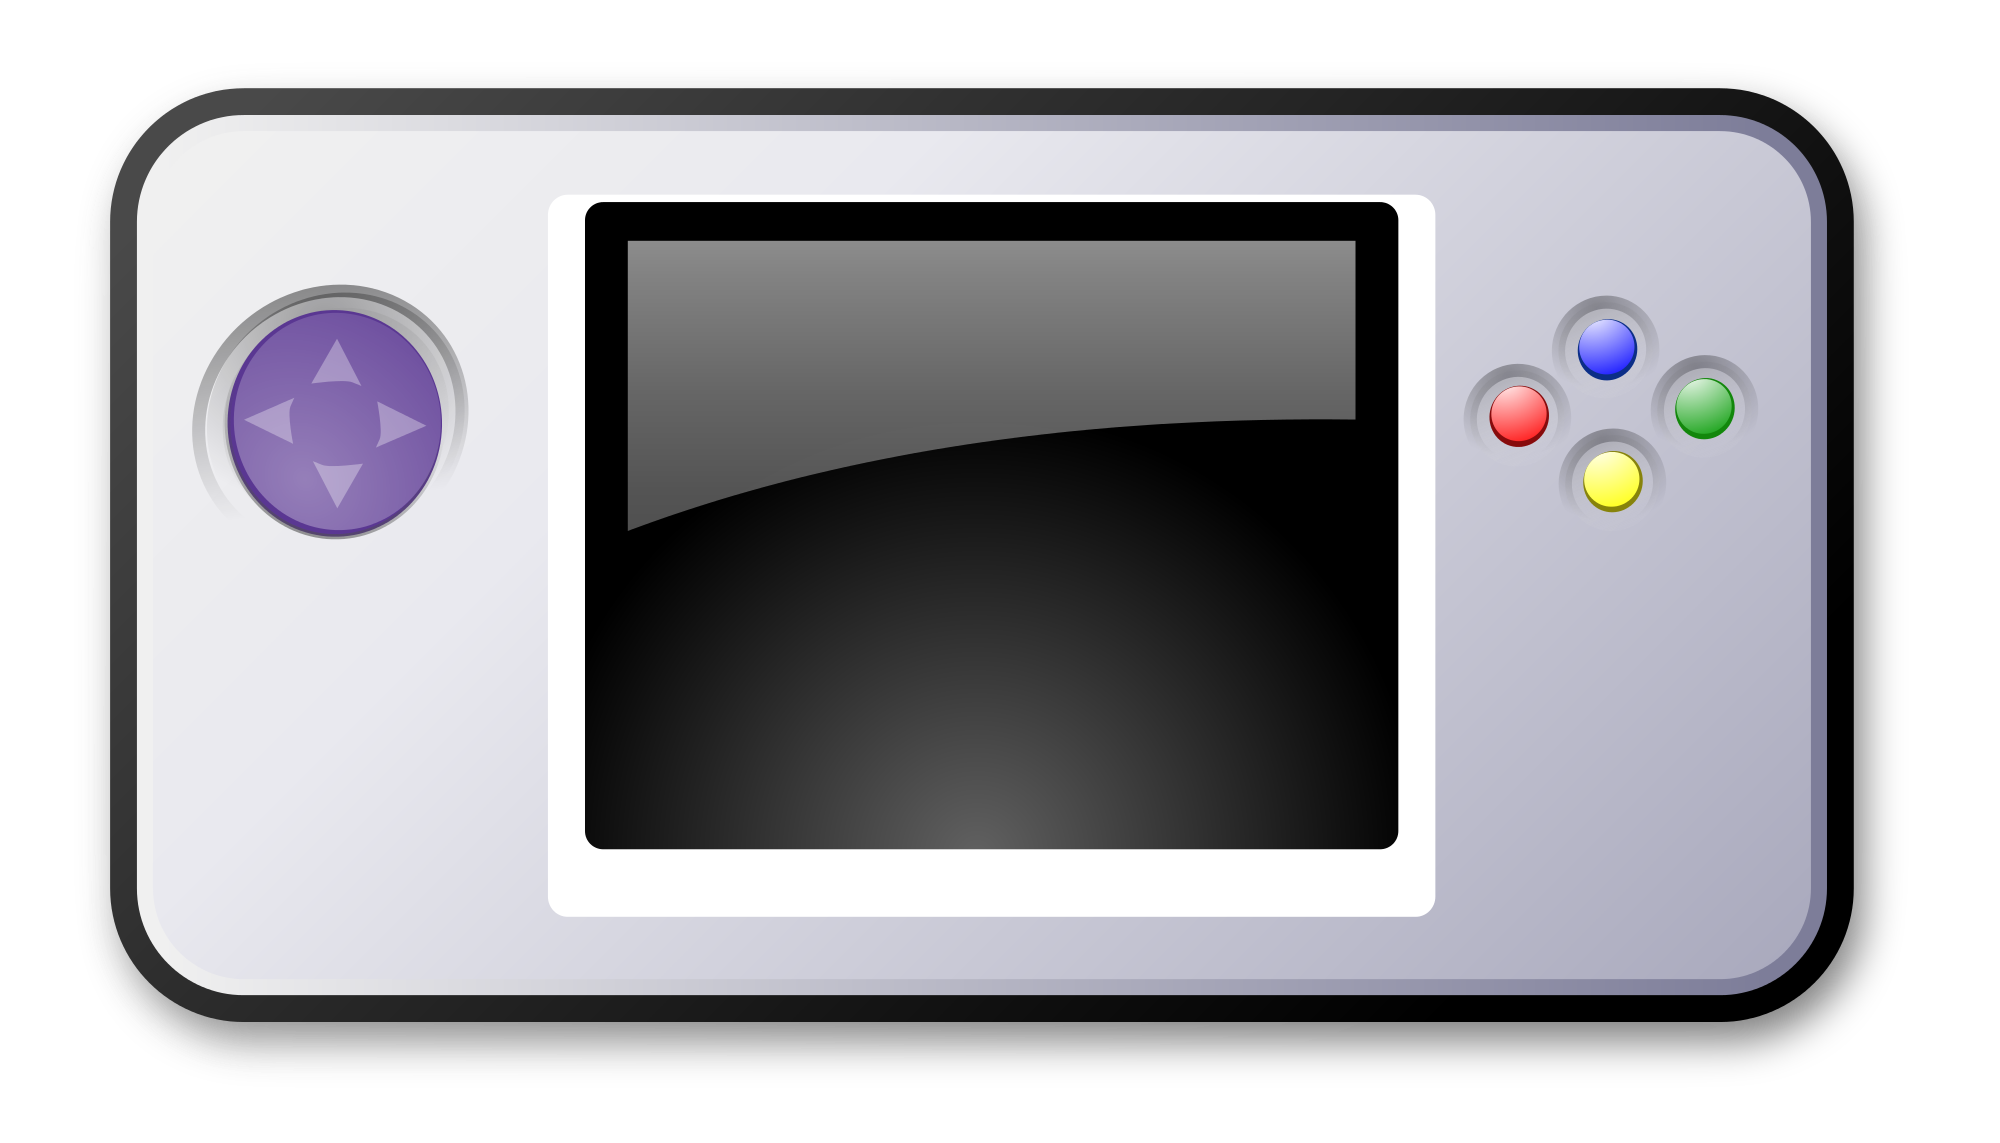 File handheld console svg. Game clipart portable